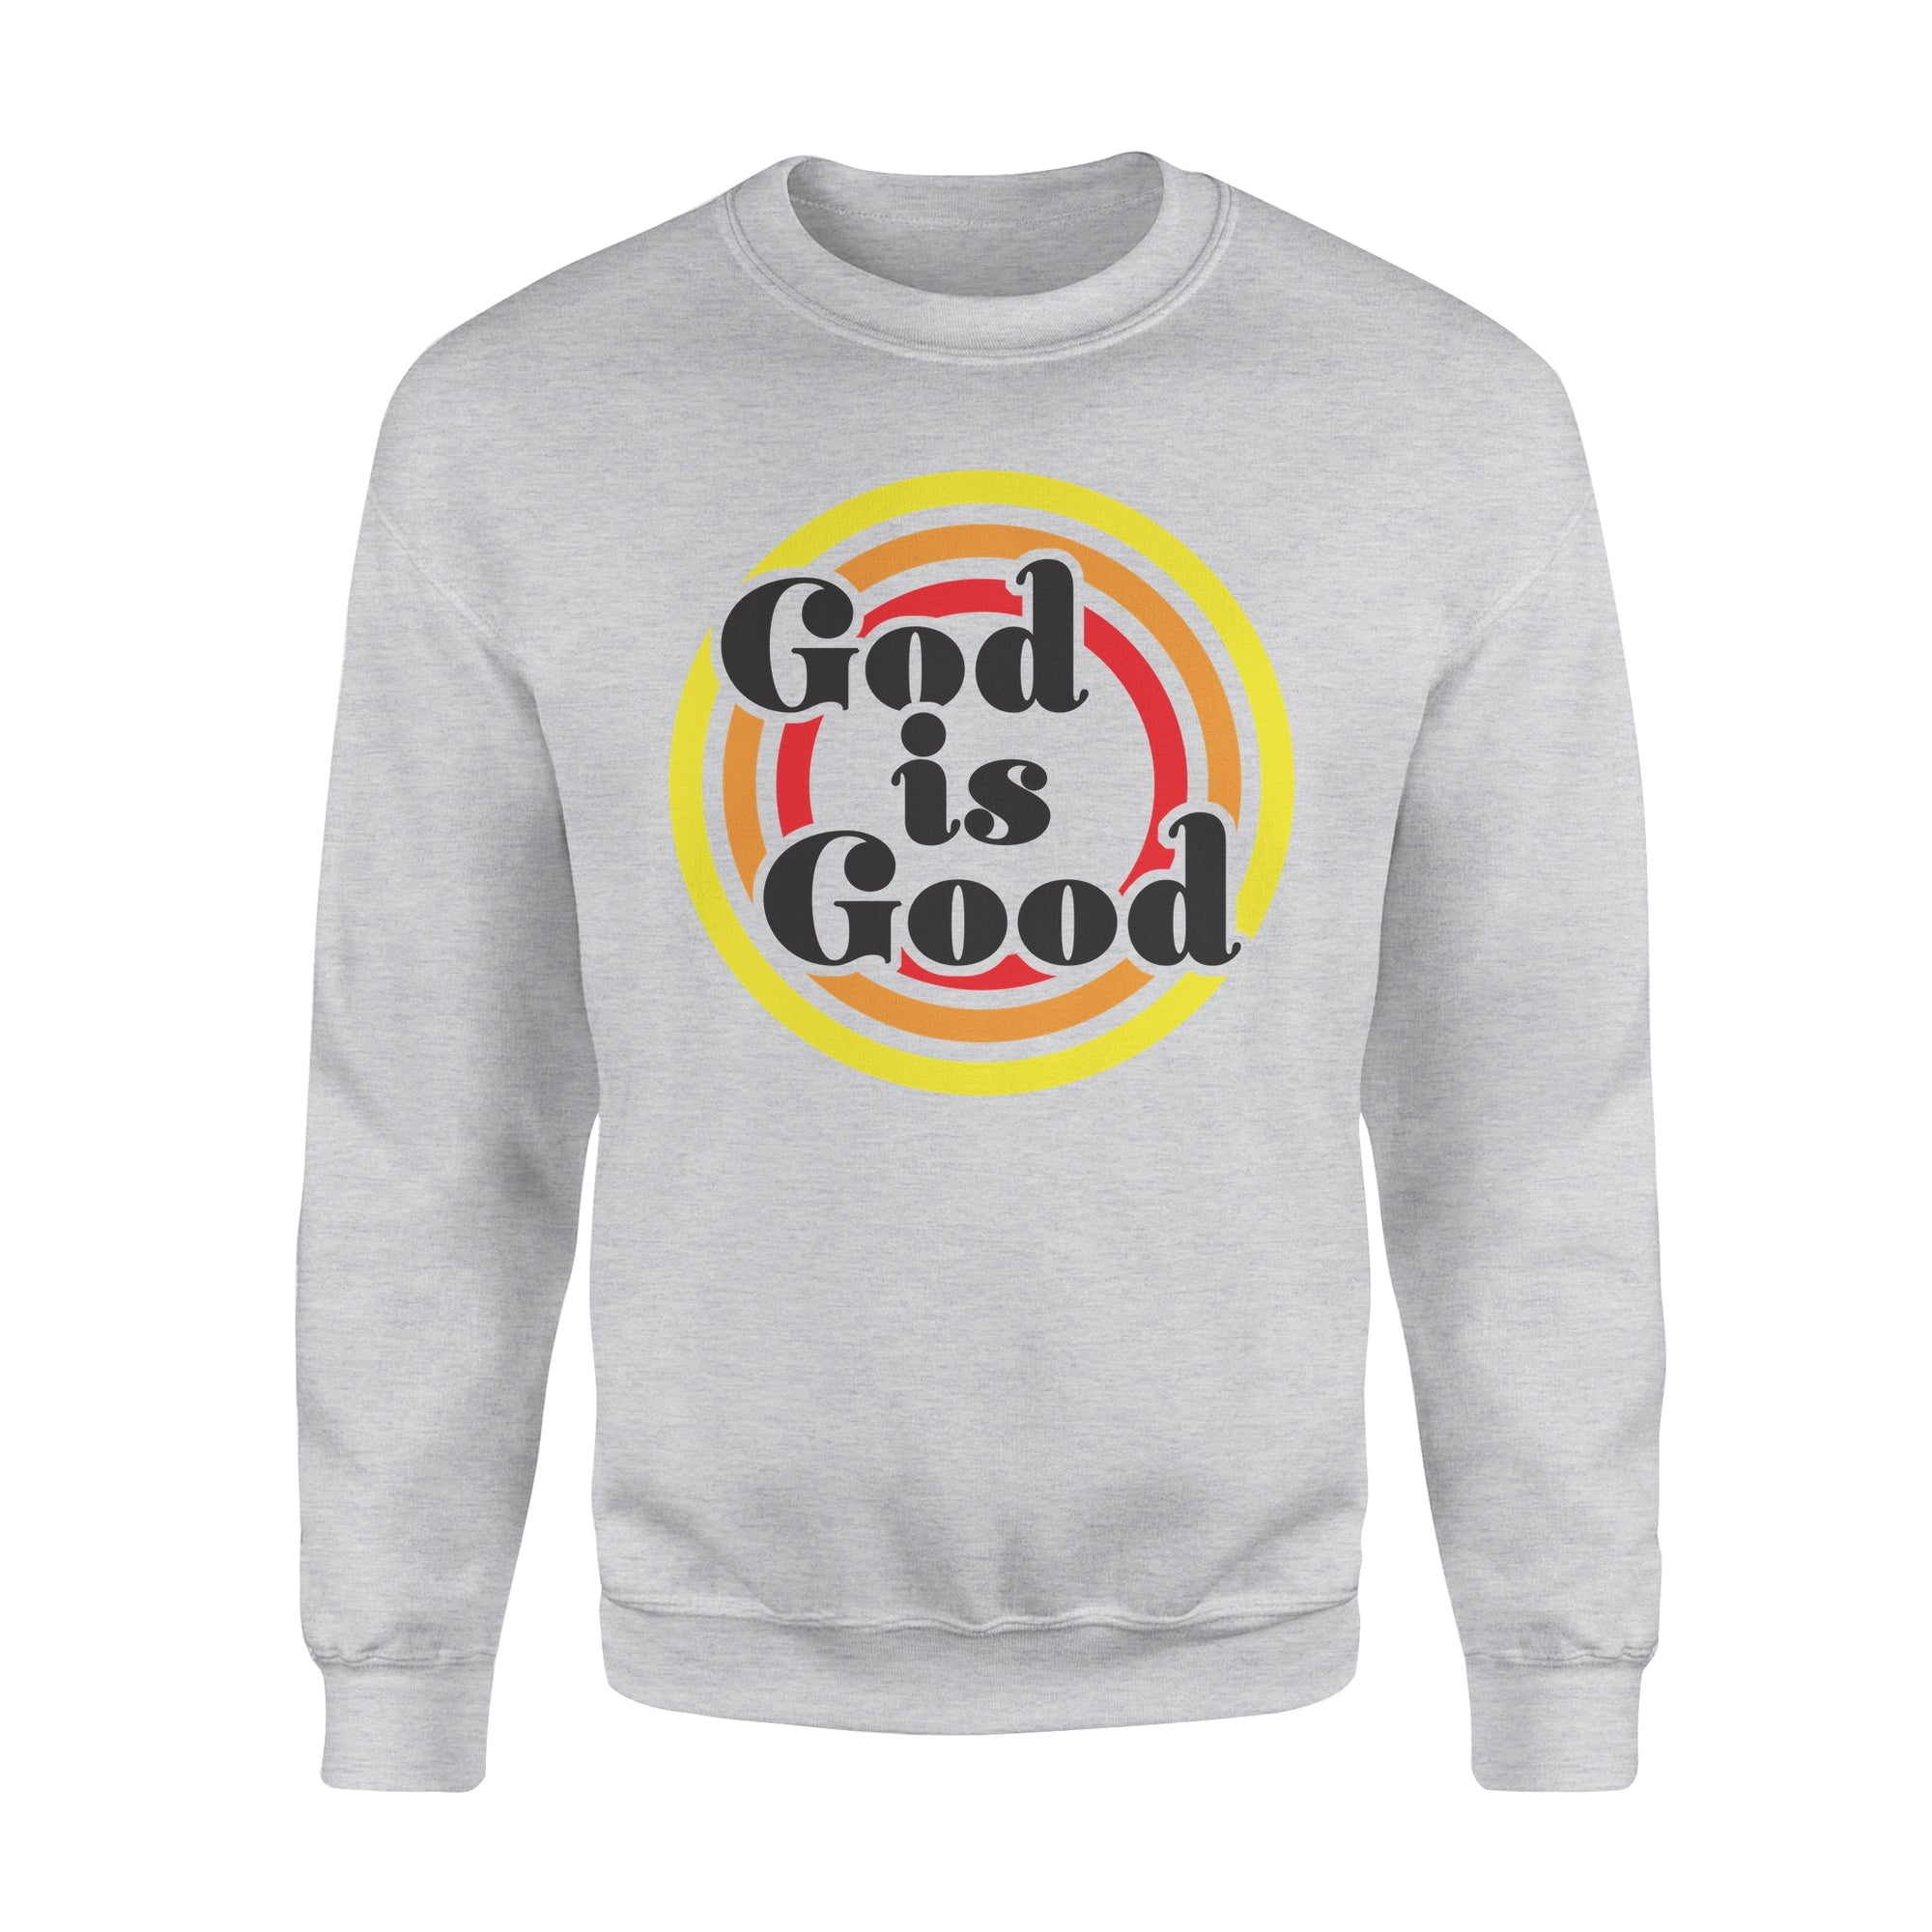 VIRA Awesome Premium Fleece Sweatshirt For God Lovers